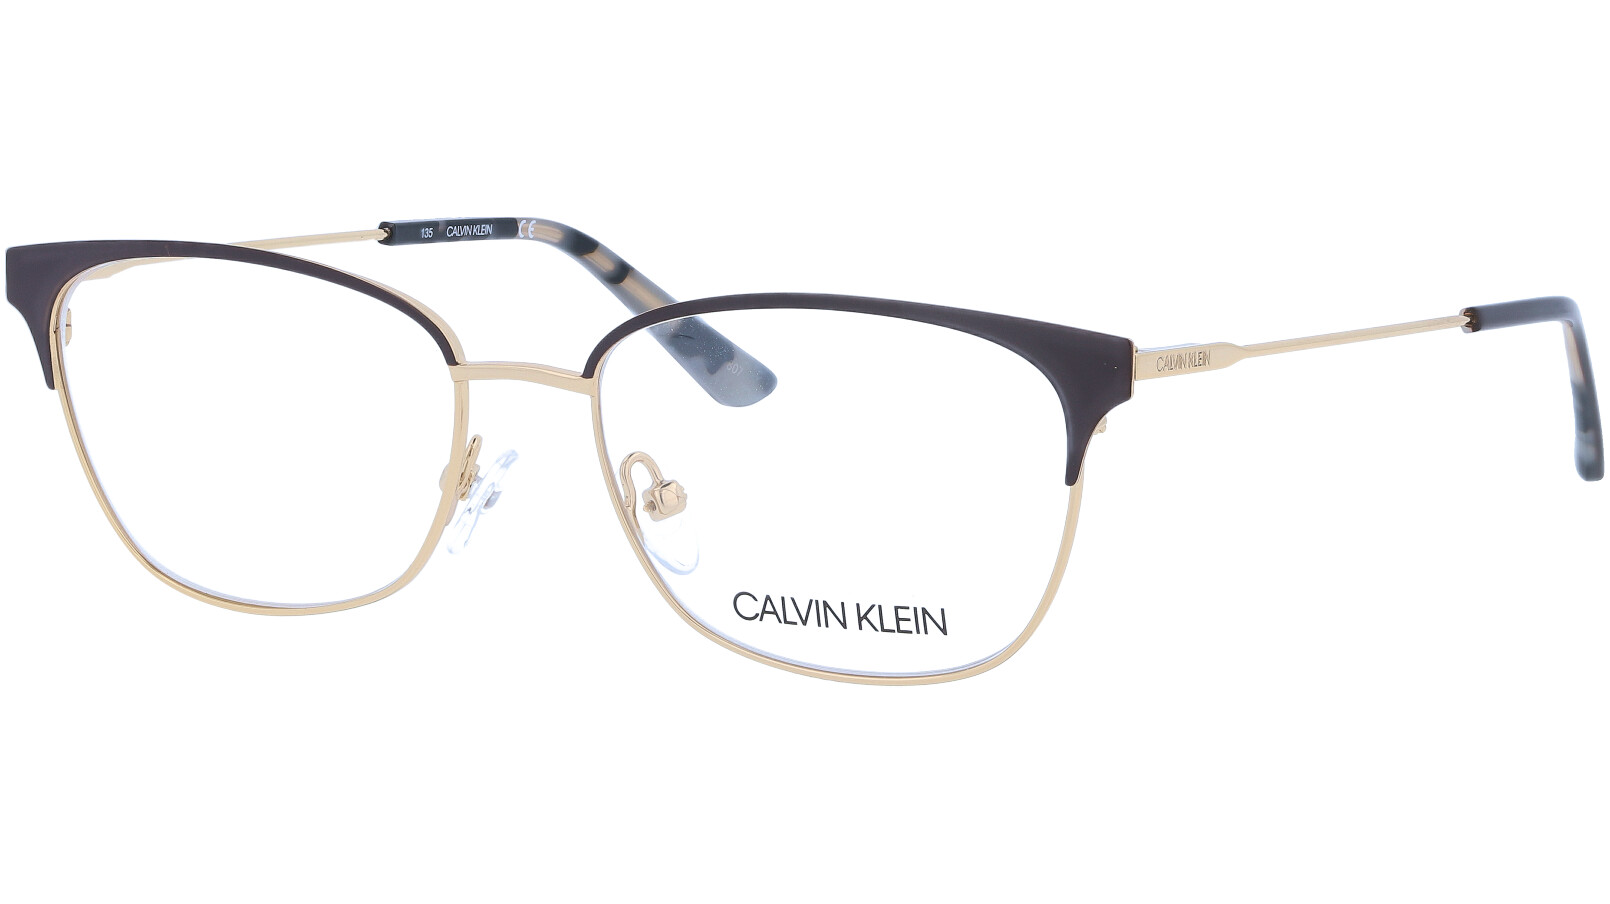 CALVIN KLEIN CK18108 200 50  BROWN Glasses